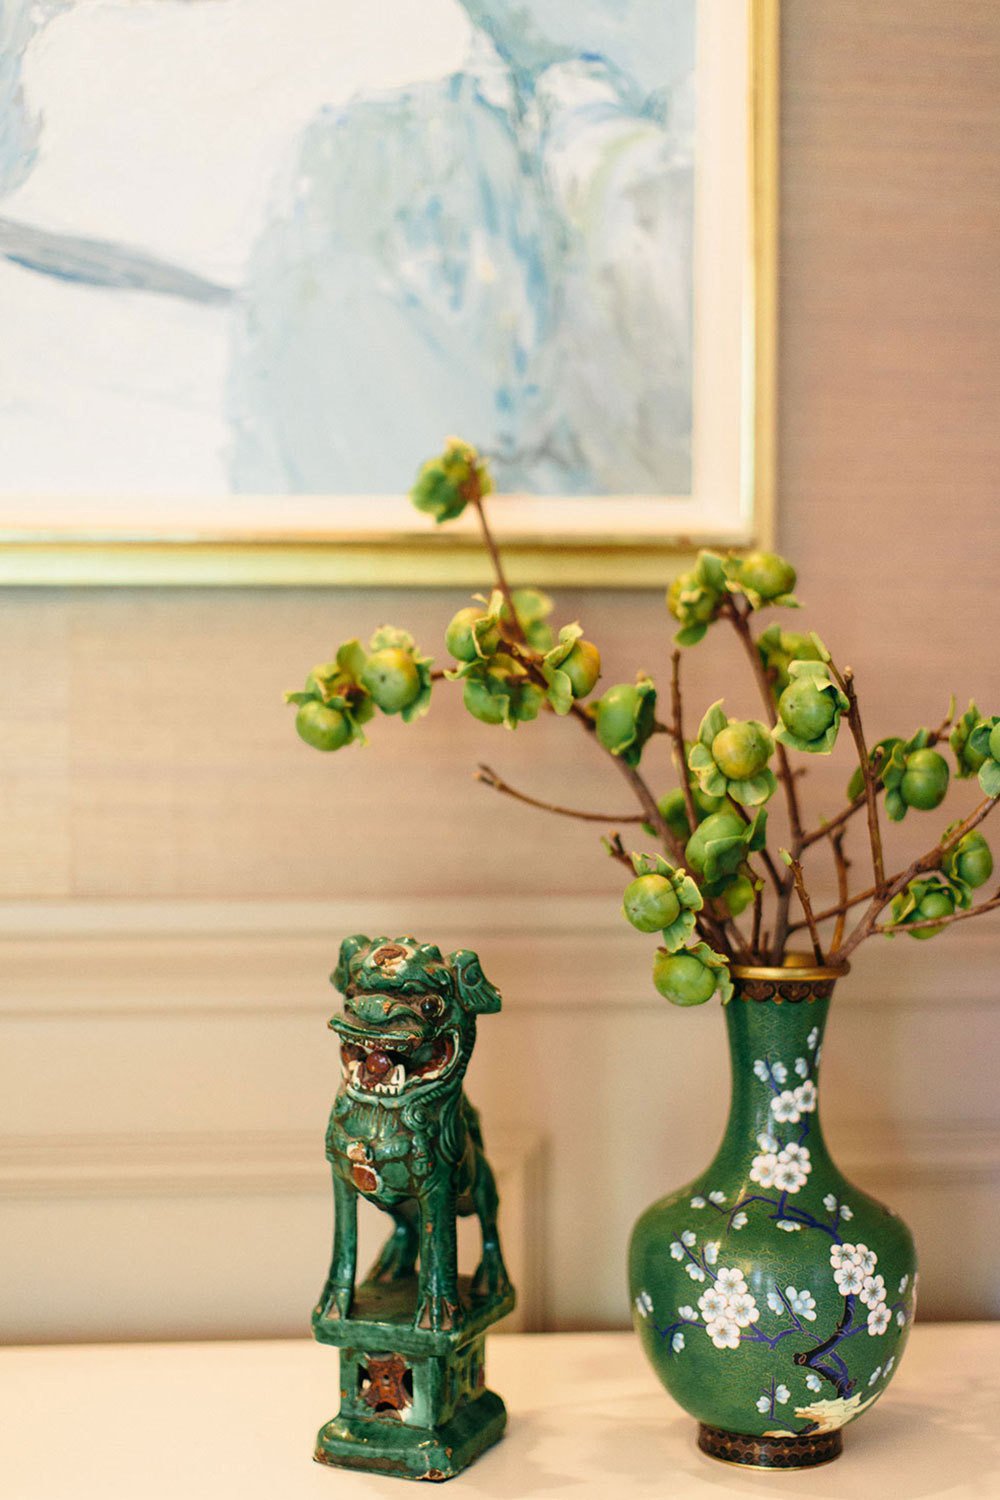 Antique figurines and Roger Mühl painting are safely out of little ones' reach in the dining room.